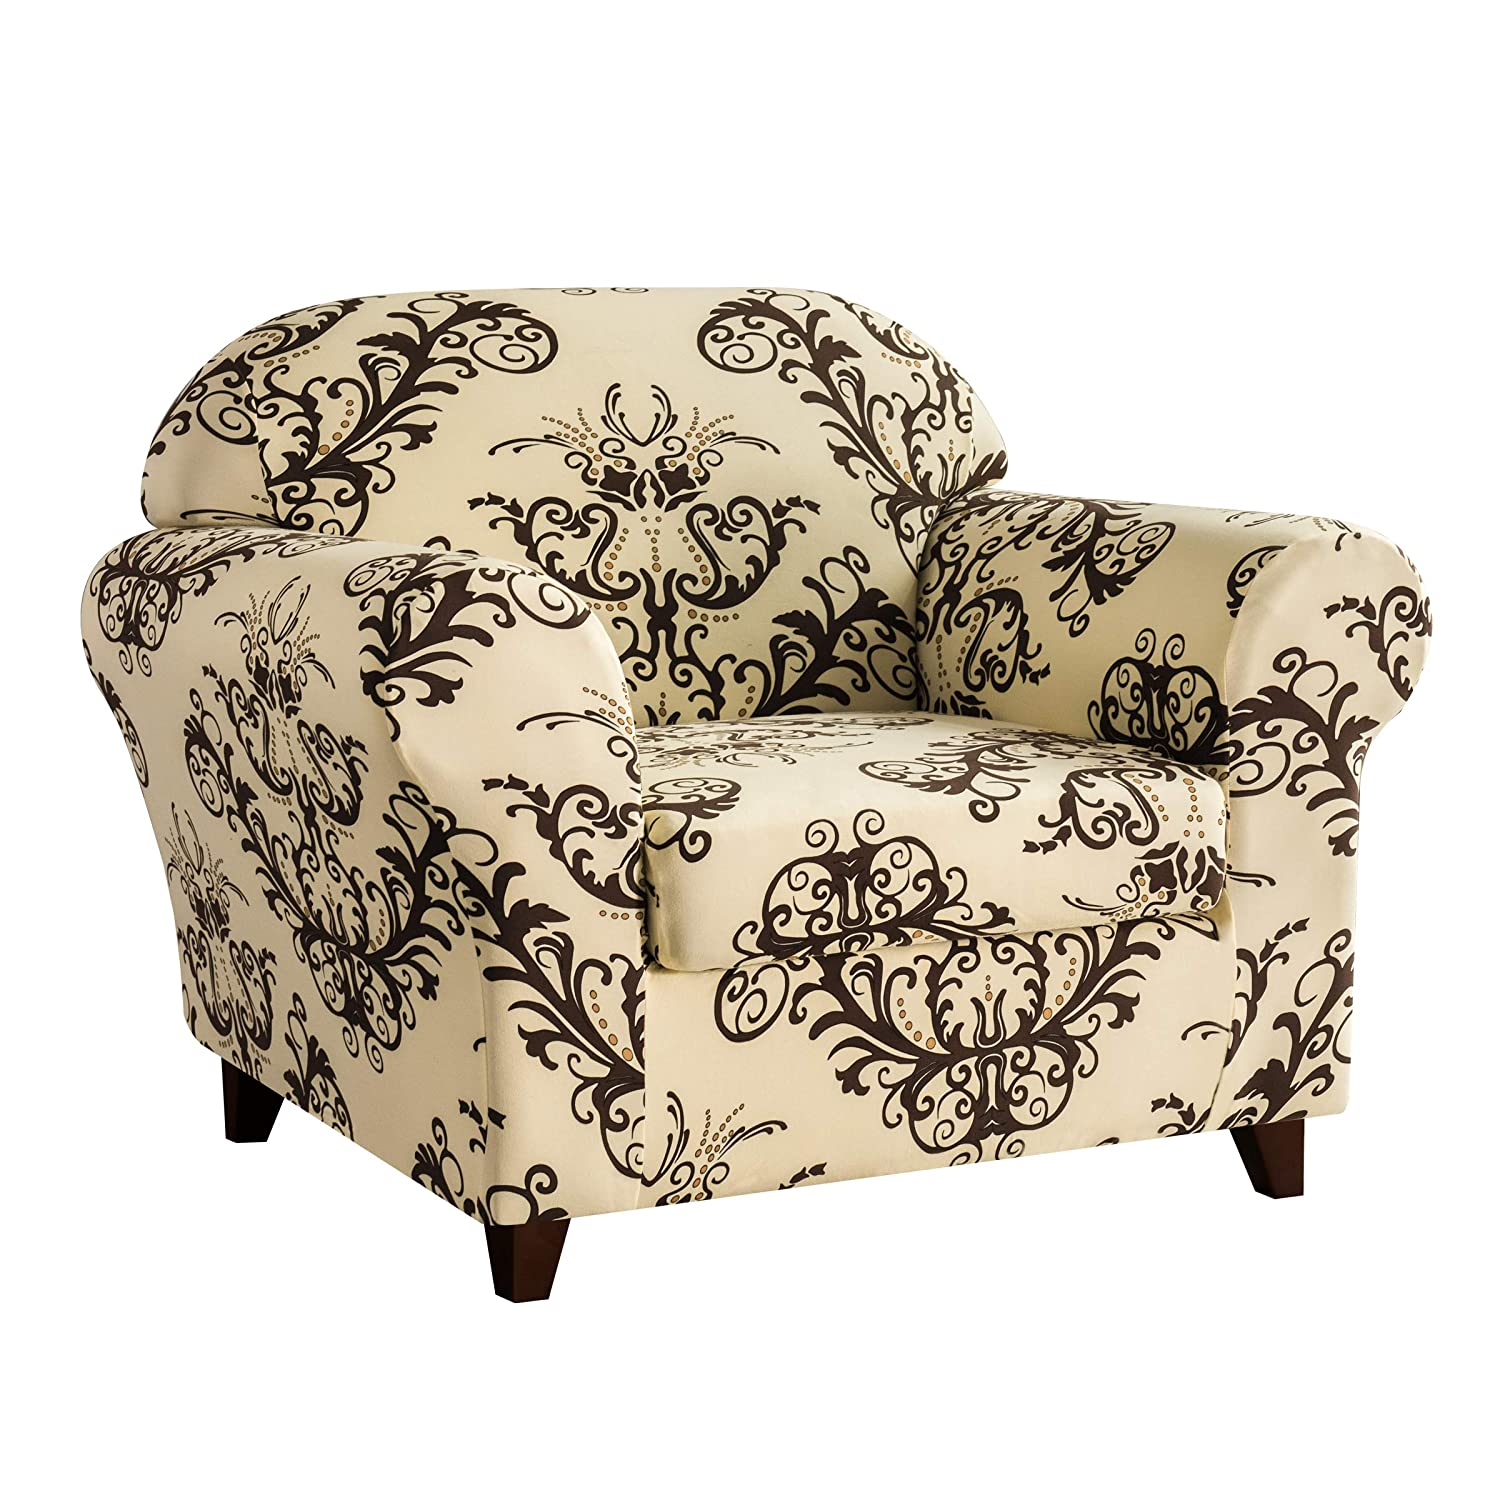 Subrtex Sofa Slipcovers Stretch Couch Covers 2-Piece Spandex Printed Furniture Protector Home Decor (Coffee, Chair)